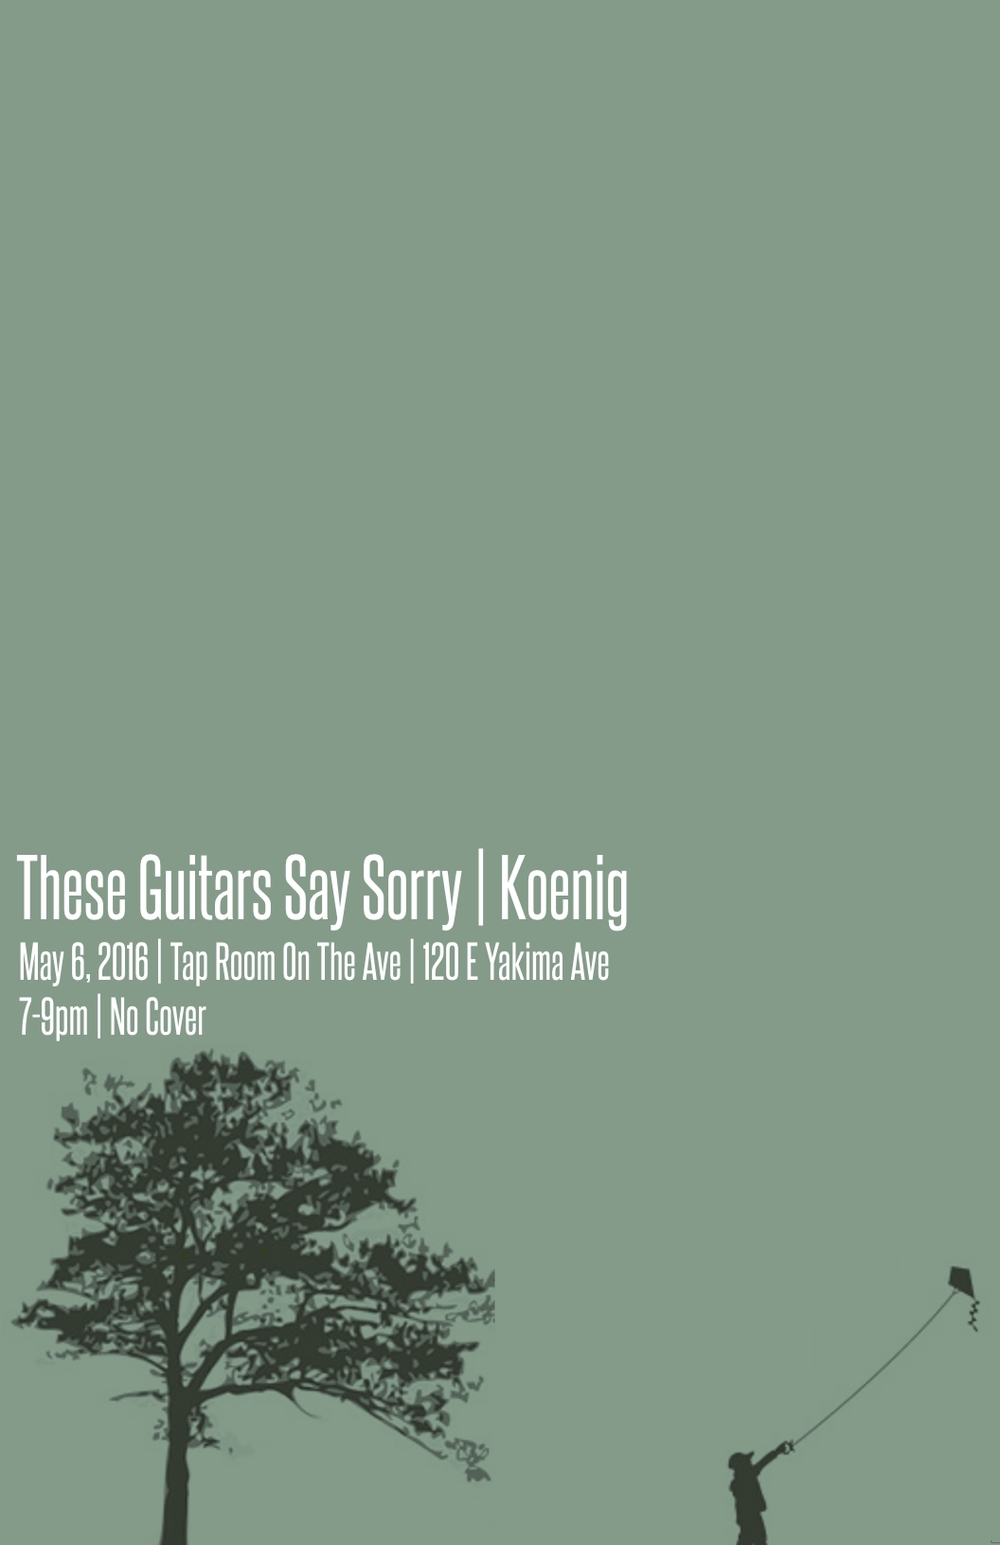 These Guitars Say Sorry are joined by Bluegrass/Rockabilly Koenig for a songwriter evening at The Tap Room on Yakima Ave, Friday May 6 starting at 7pm. No Cover.